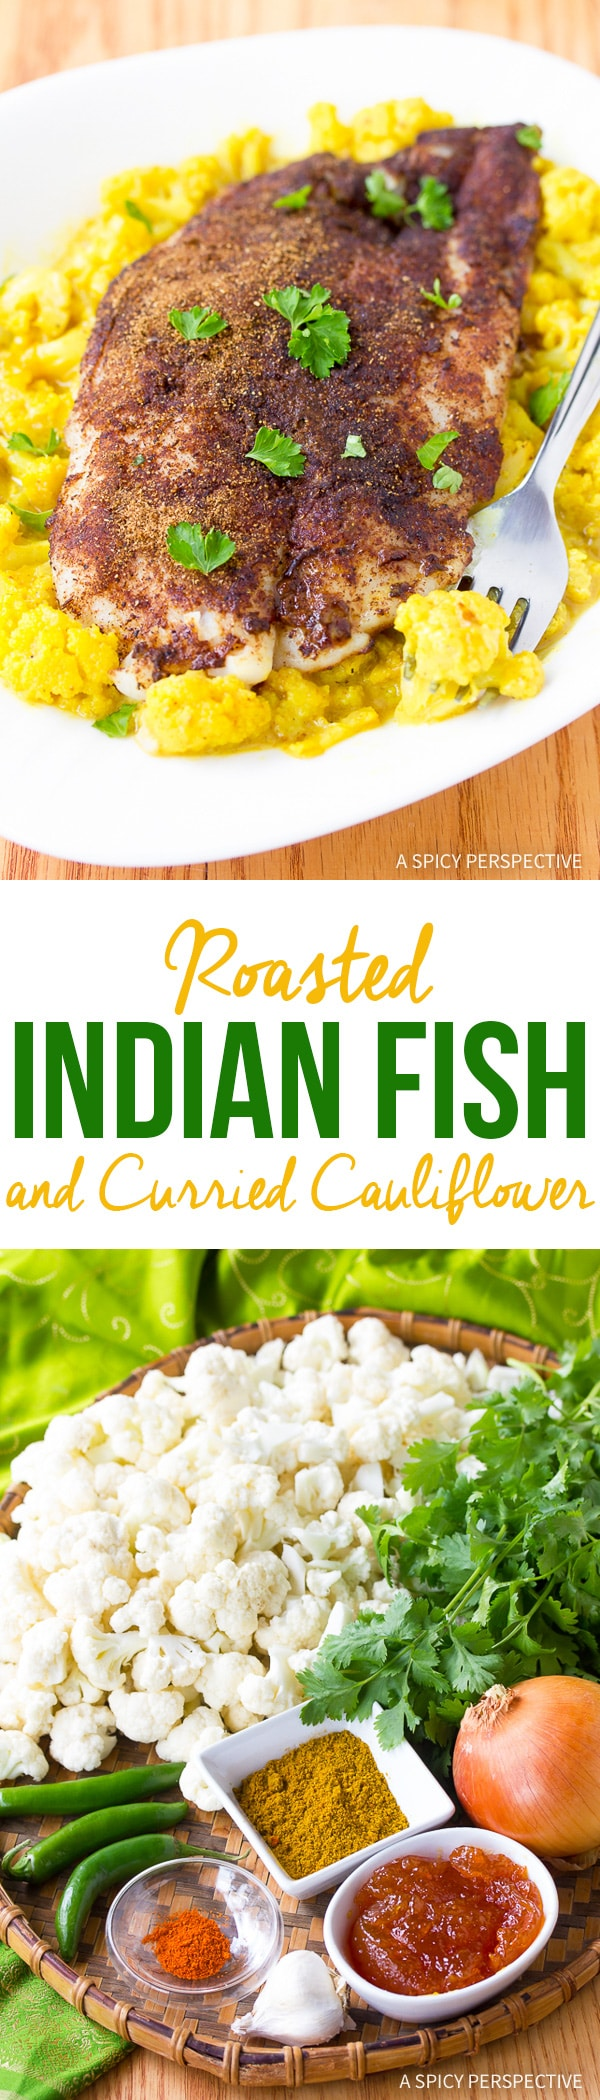 Zesty Roasted Indian Fish and Creamy Curried Cauliflower Recipe